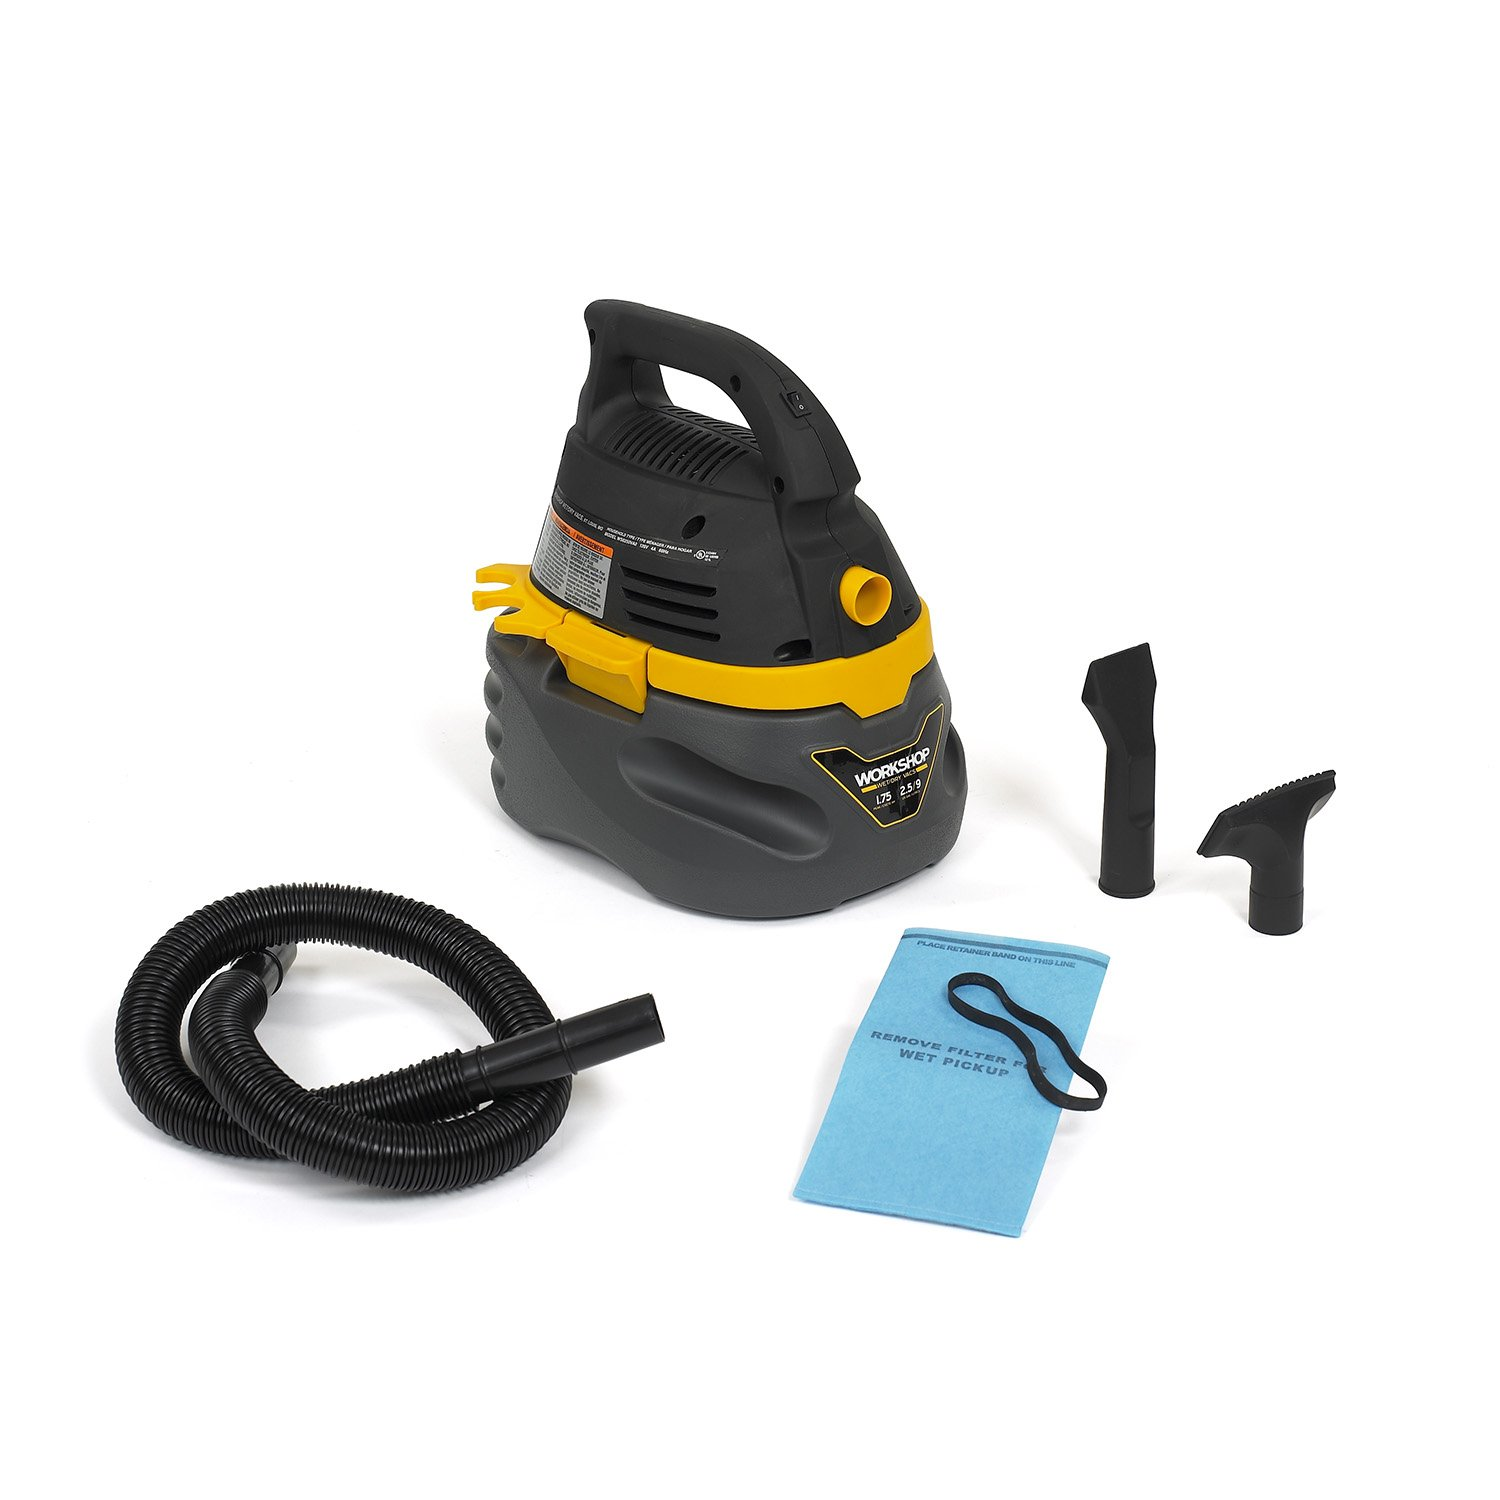 WORKSHOP Wet Dry Vac WS0250VA Compact, Portable Wet Dry Vacuum Cleaner